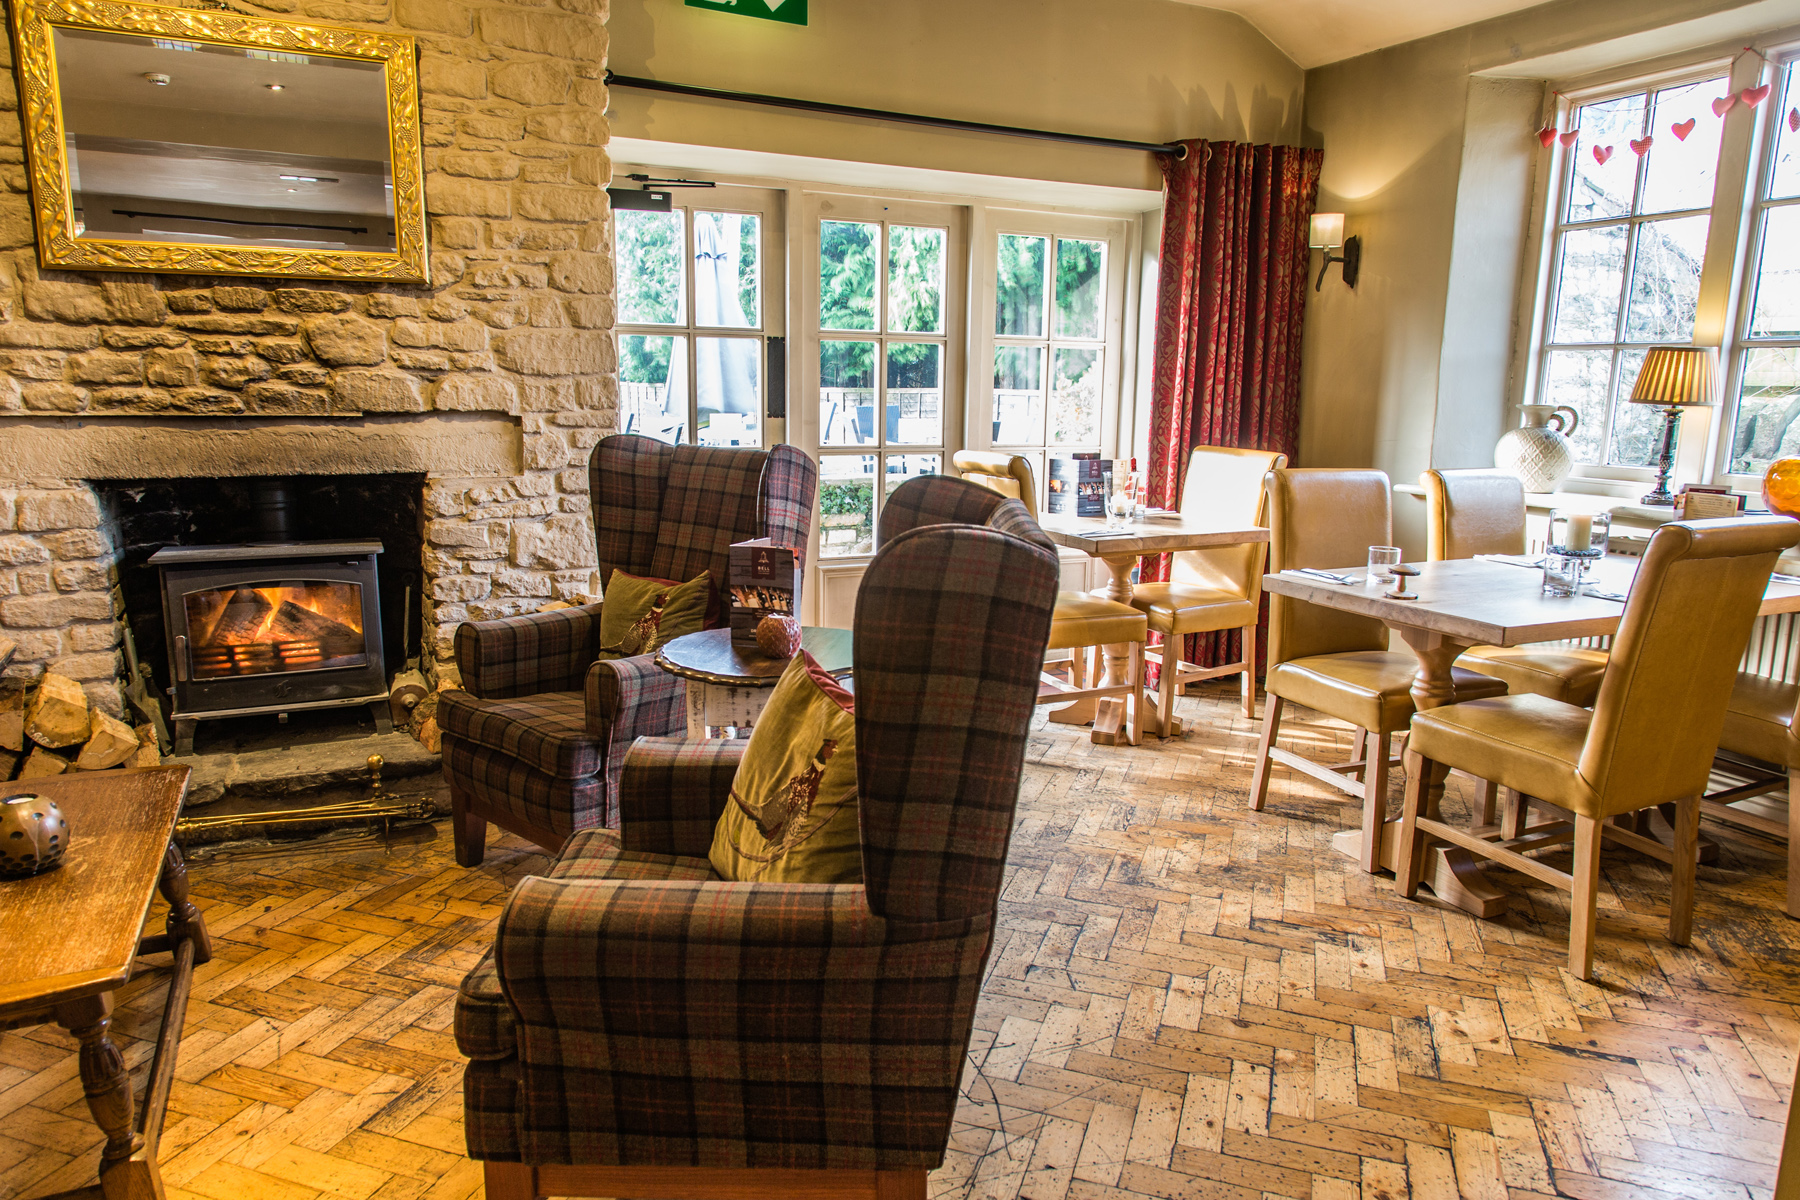 Comfy chairs and a log fire